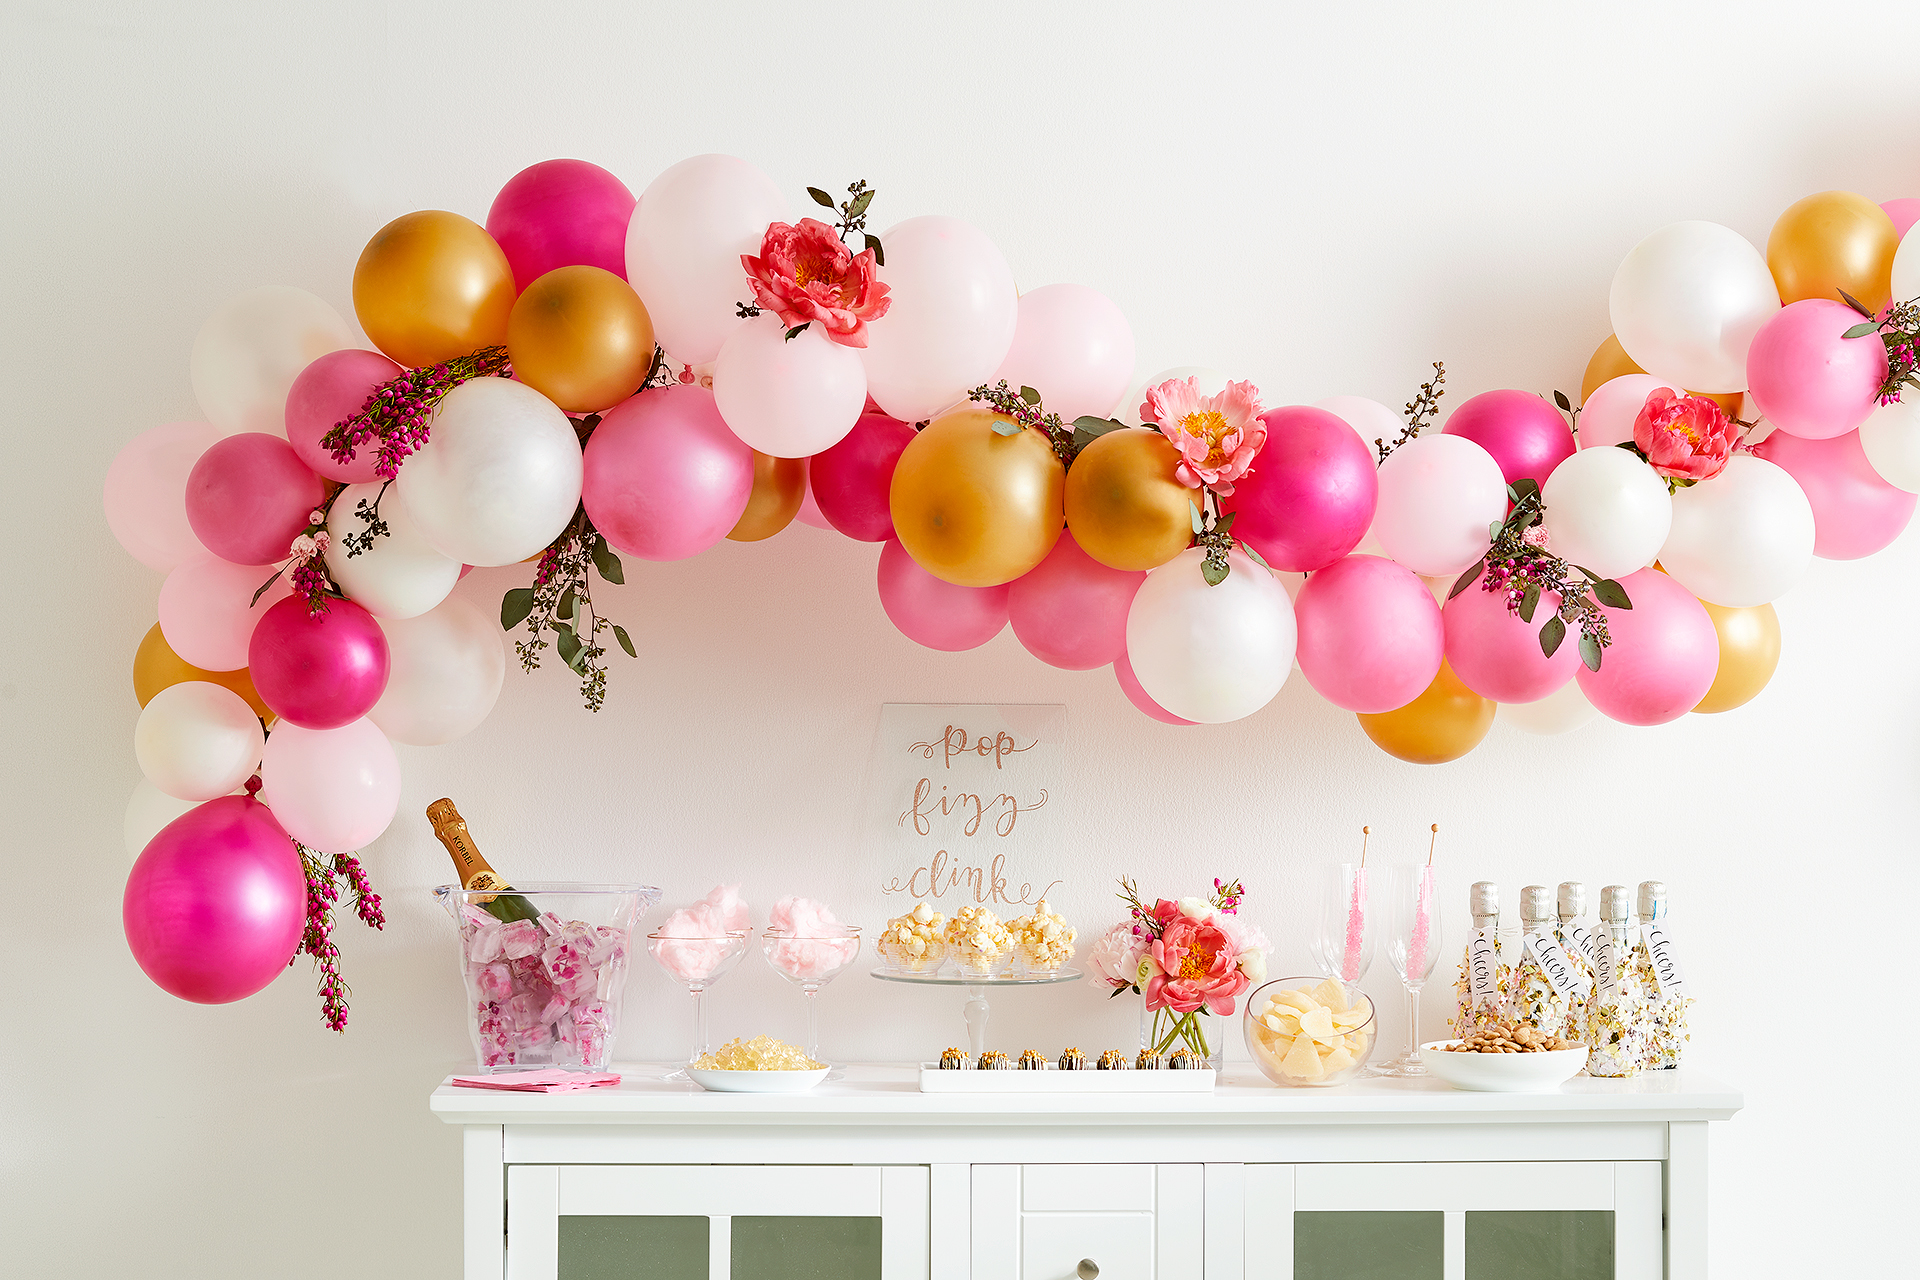 gold and pink decor and balloon banner